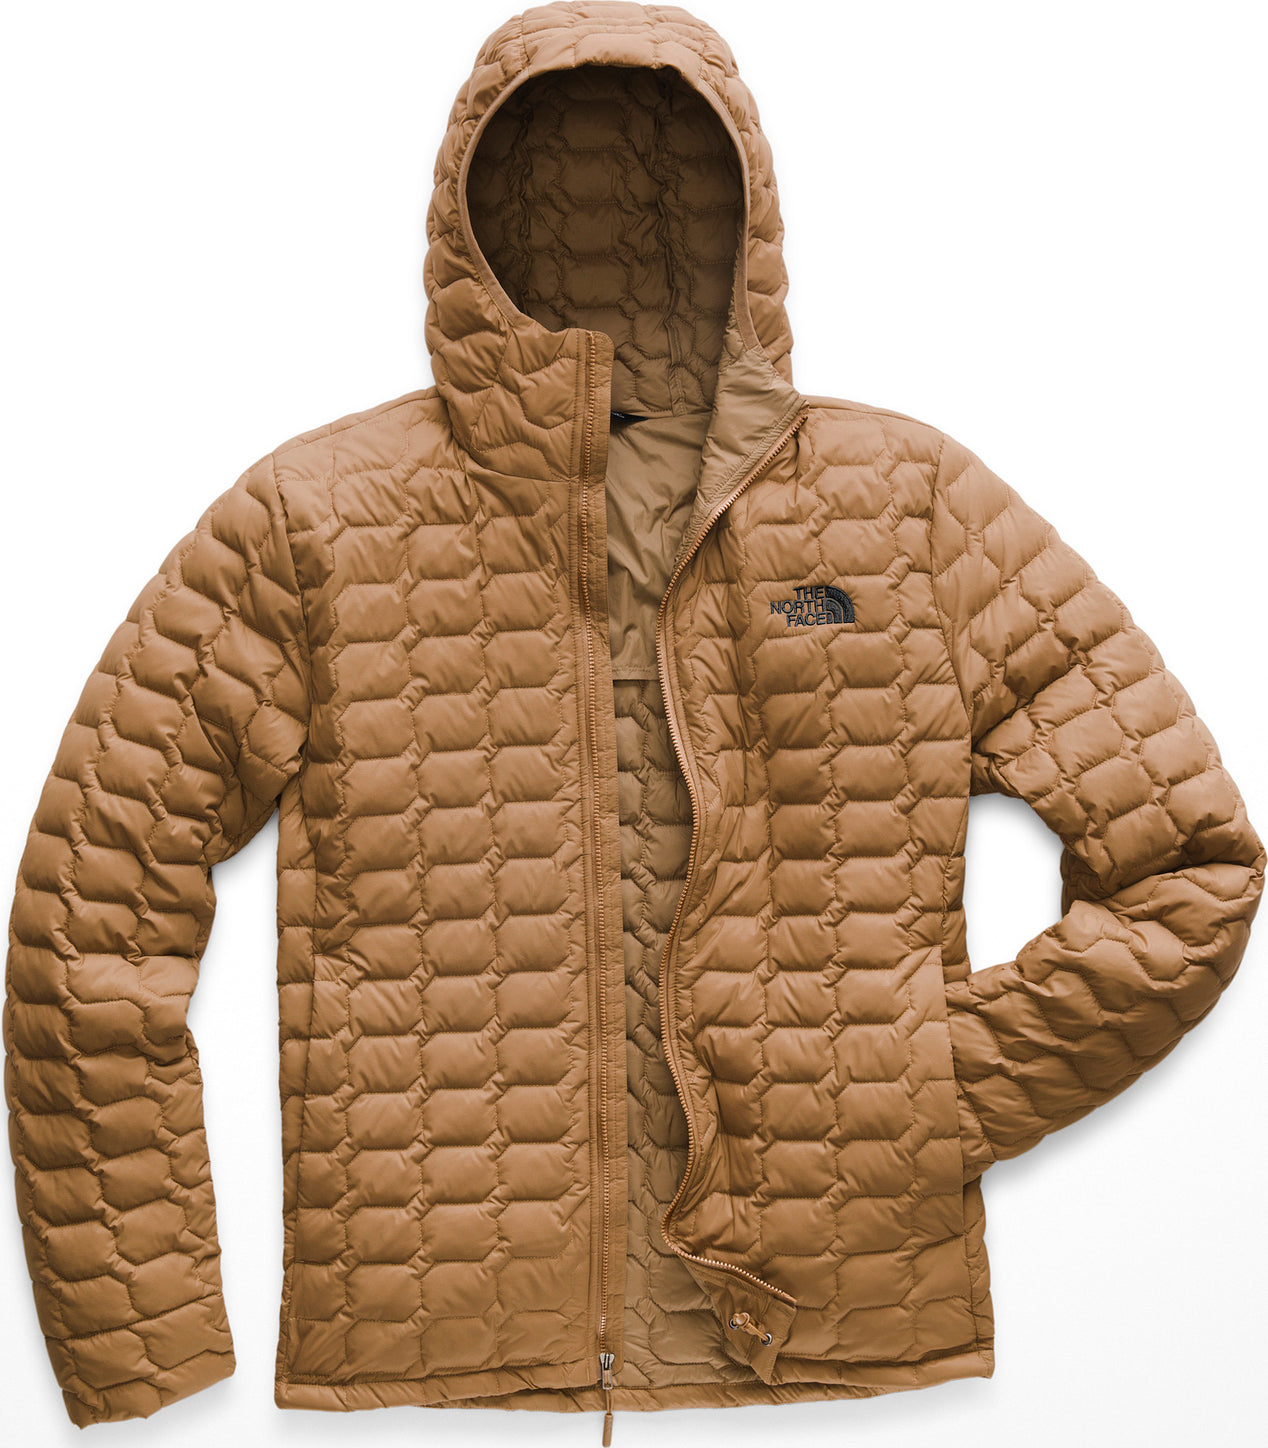 28f6e9cde ThermoBall Hoodie - Men's